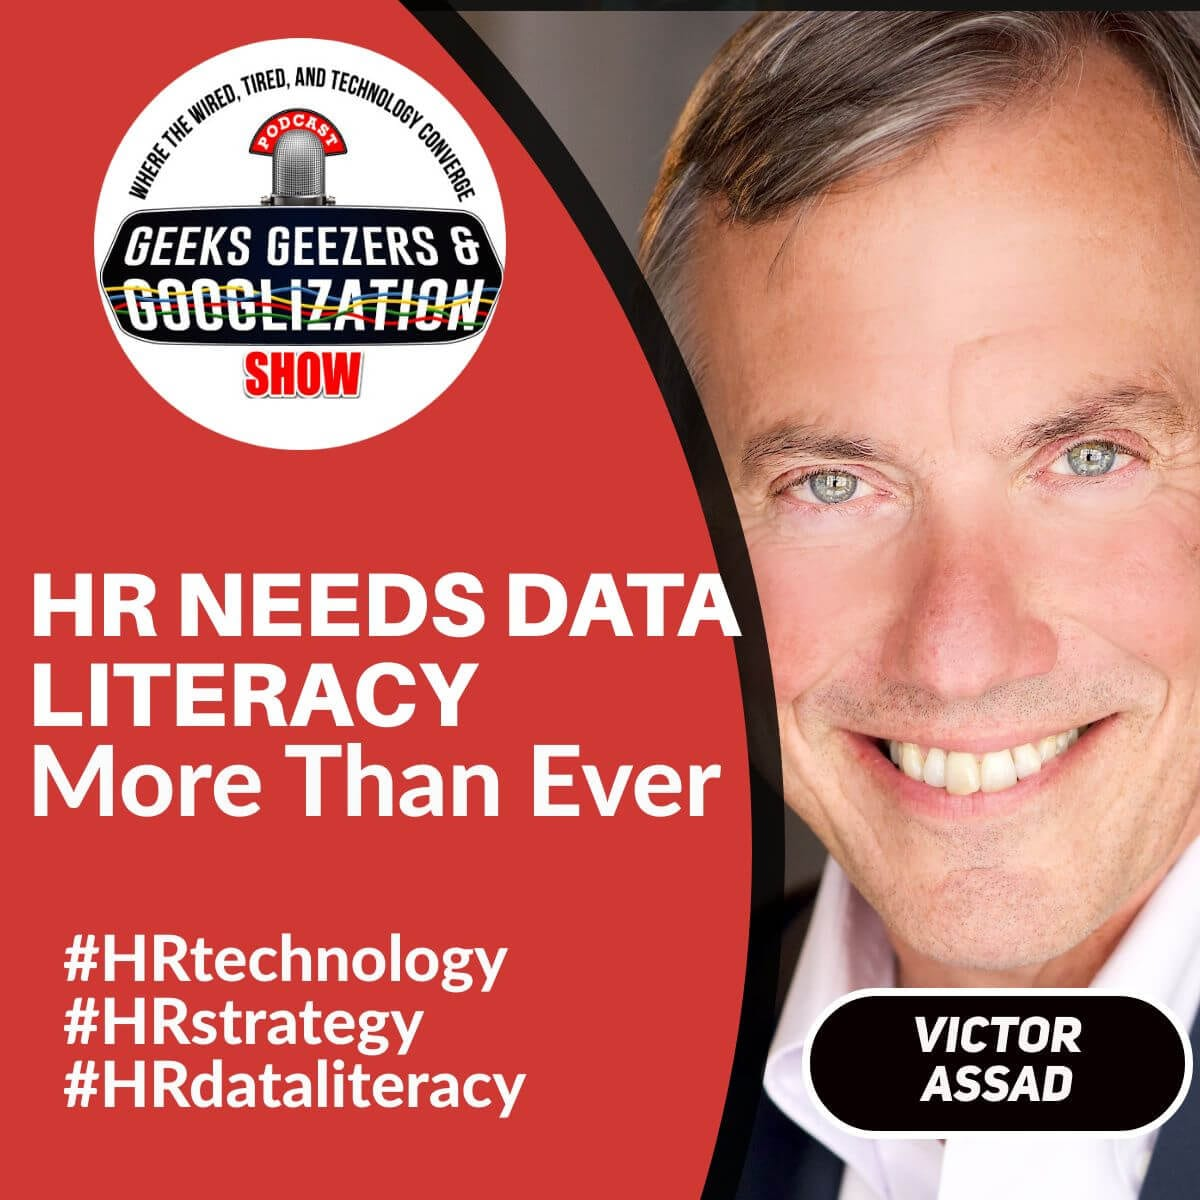 [Podcast] HR Needs Data Literacy More Than Ever with Victor Assad